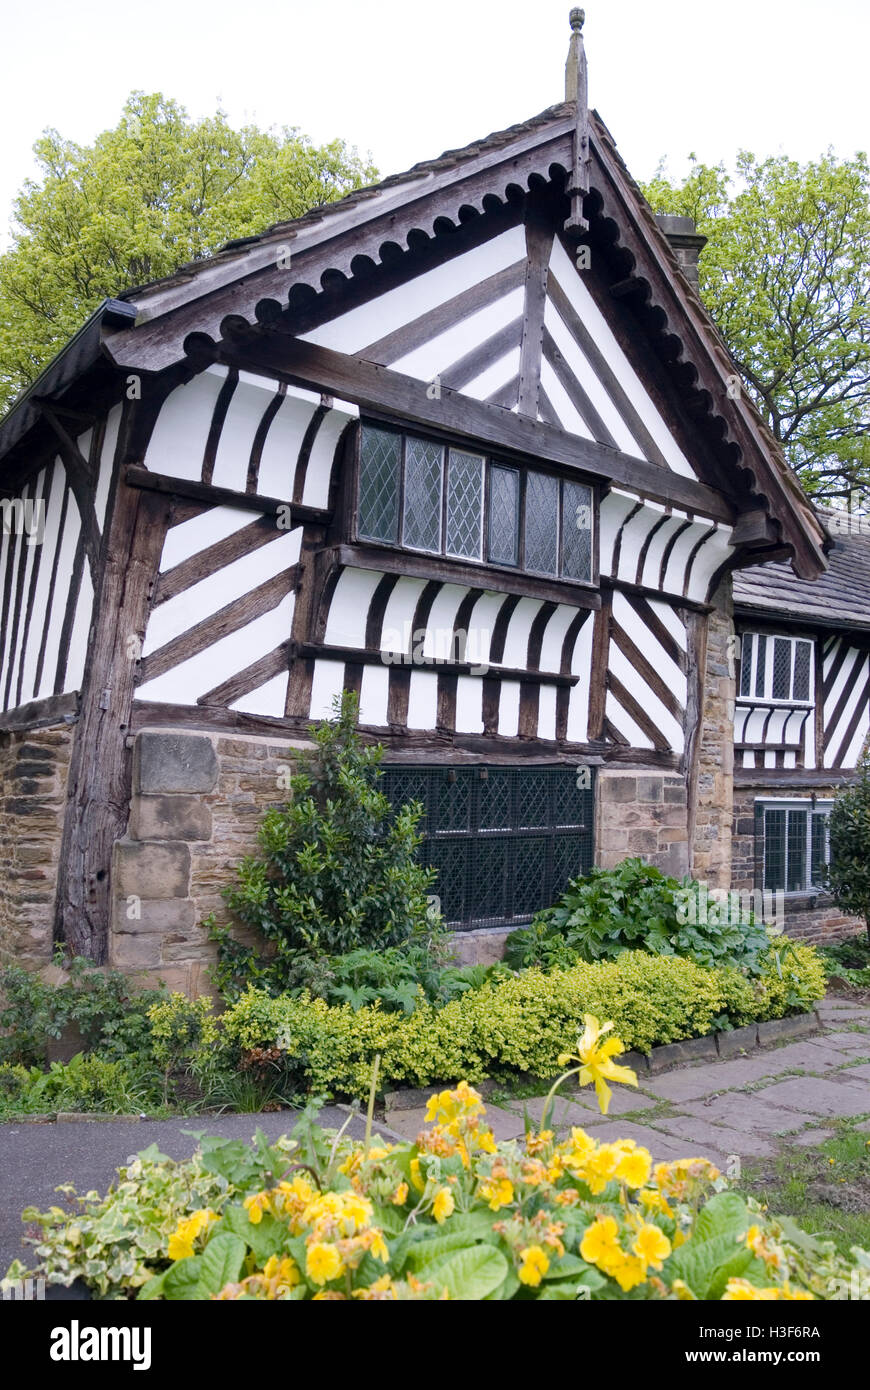 Sheffield, UK 03 May 2014: The Bishops' House on 03 May 2014 in Meersbrook Park, Sheffield, UK. A Tudor timber - Stock Image